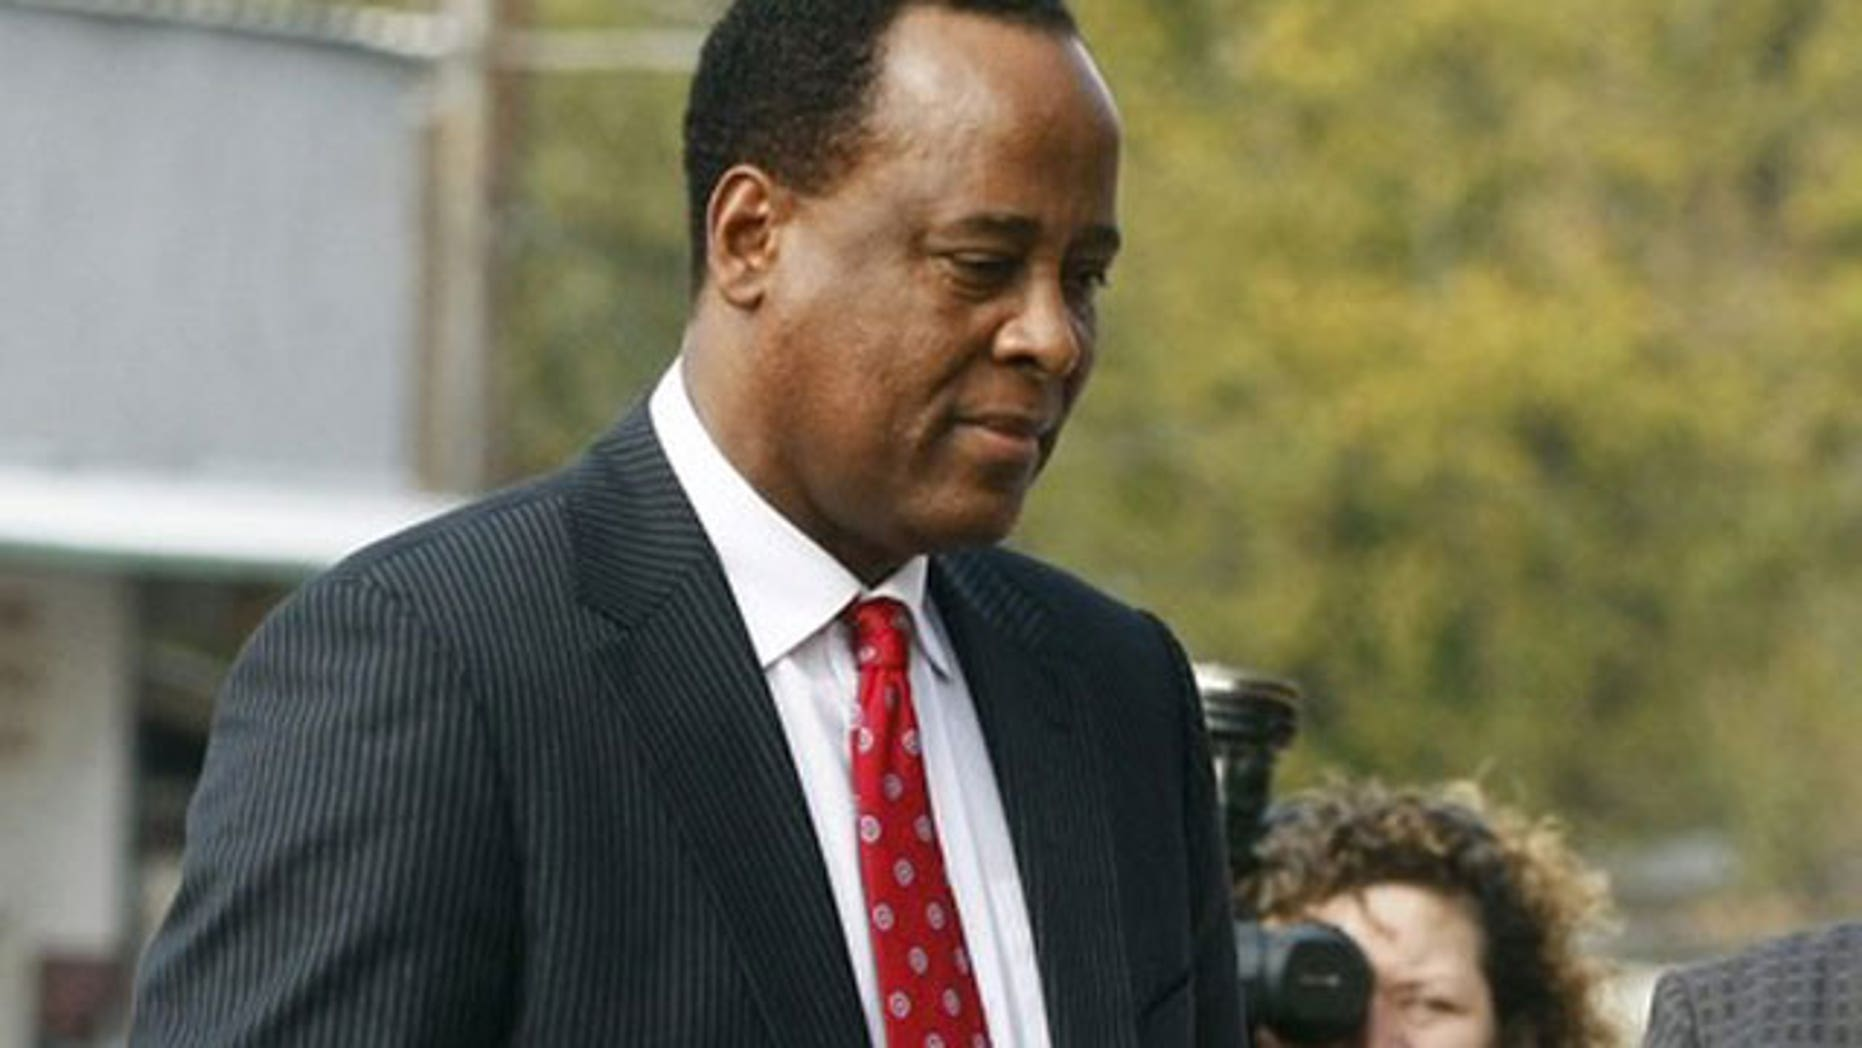 FILE: Dr. Conrad Murray is seen outside a Los Angeles courtroom in this 2010 file photo.